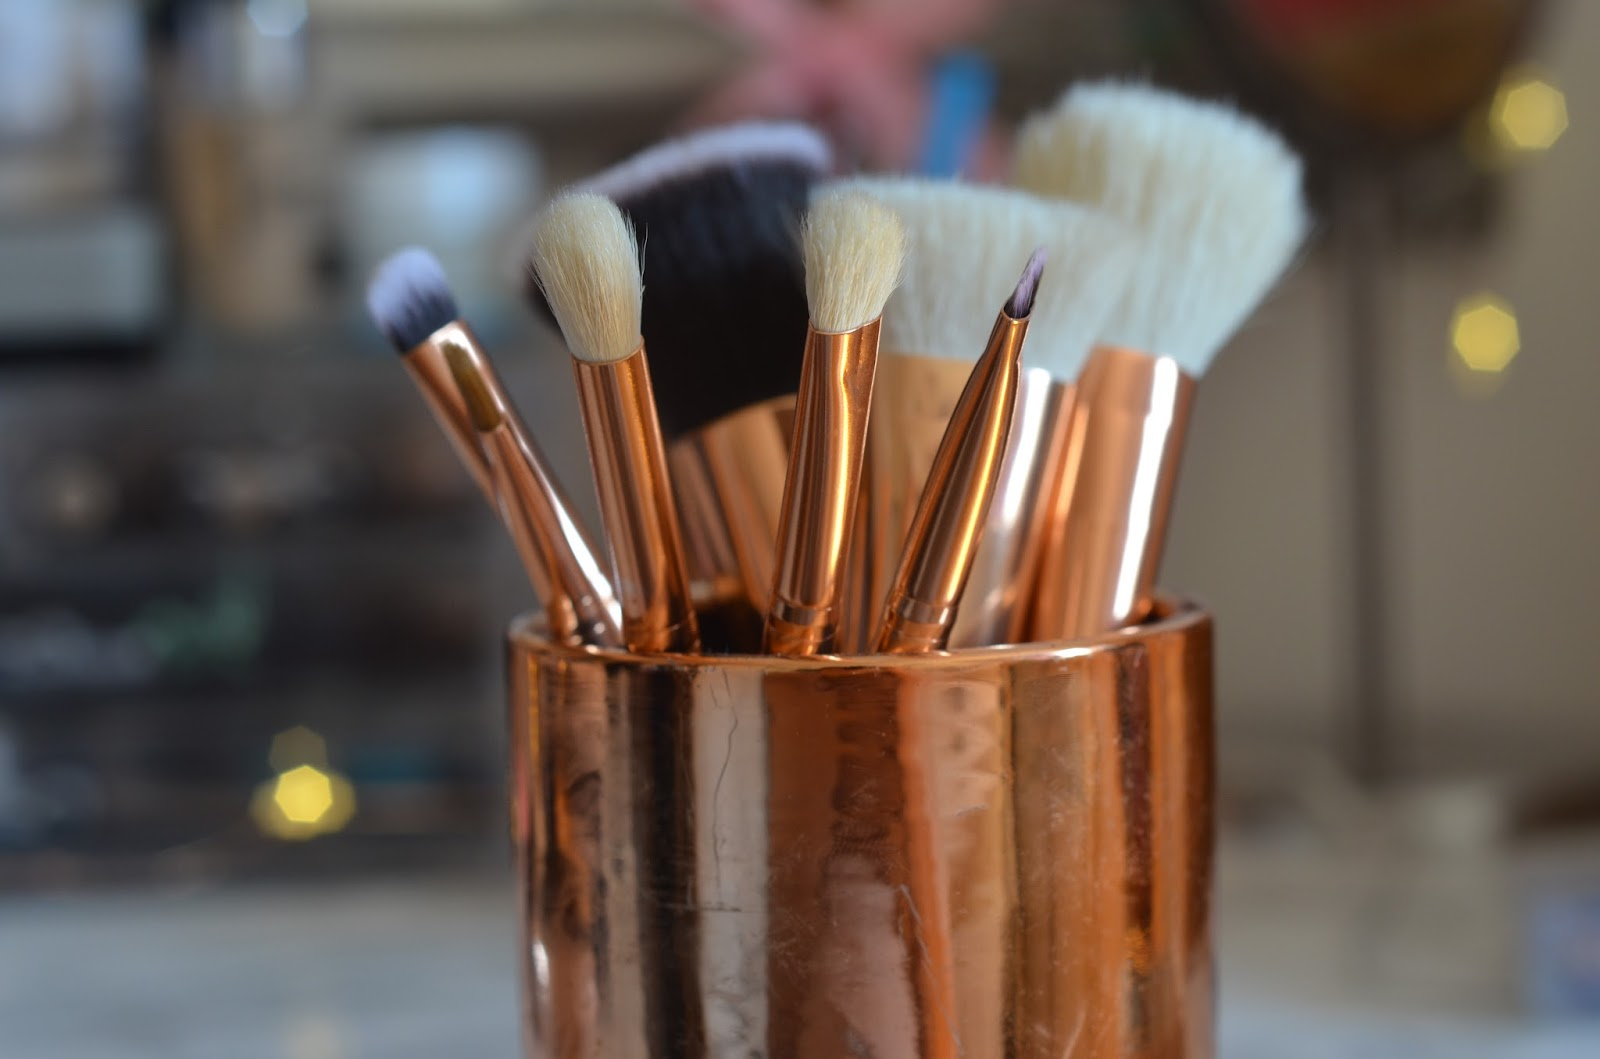 dupe brushes